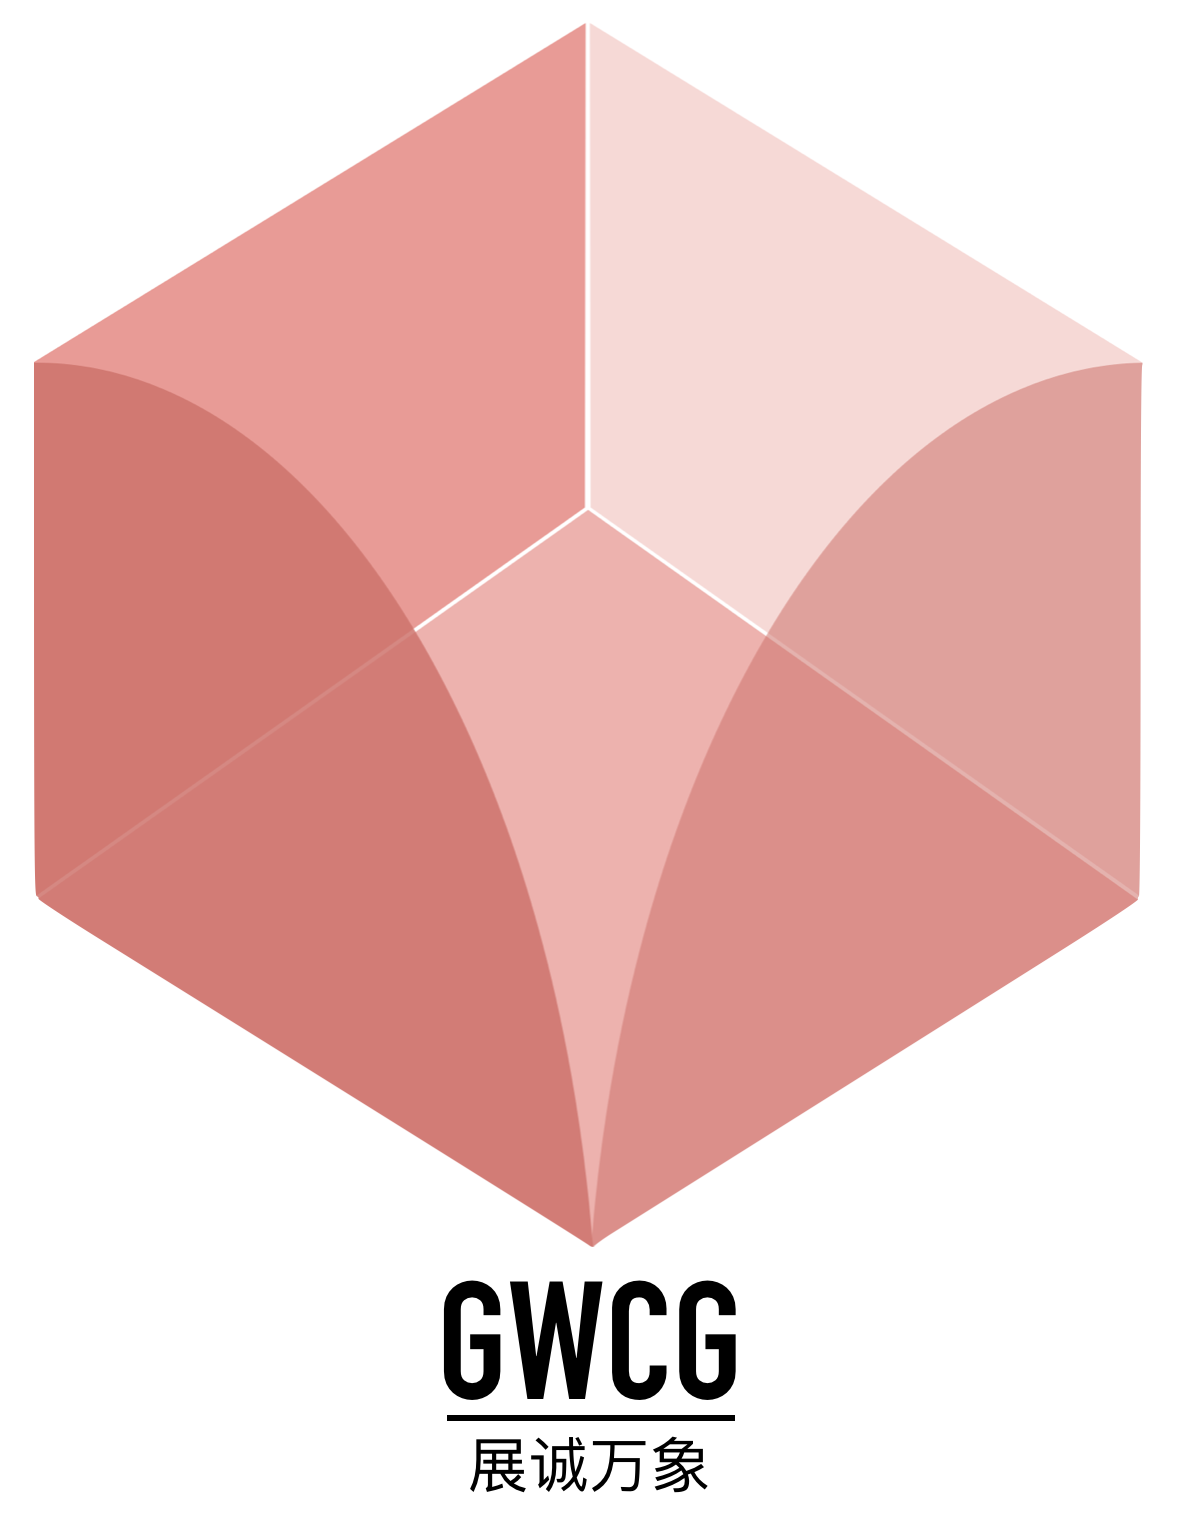 GWCG - Genthy World Consulting Group